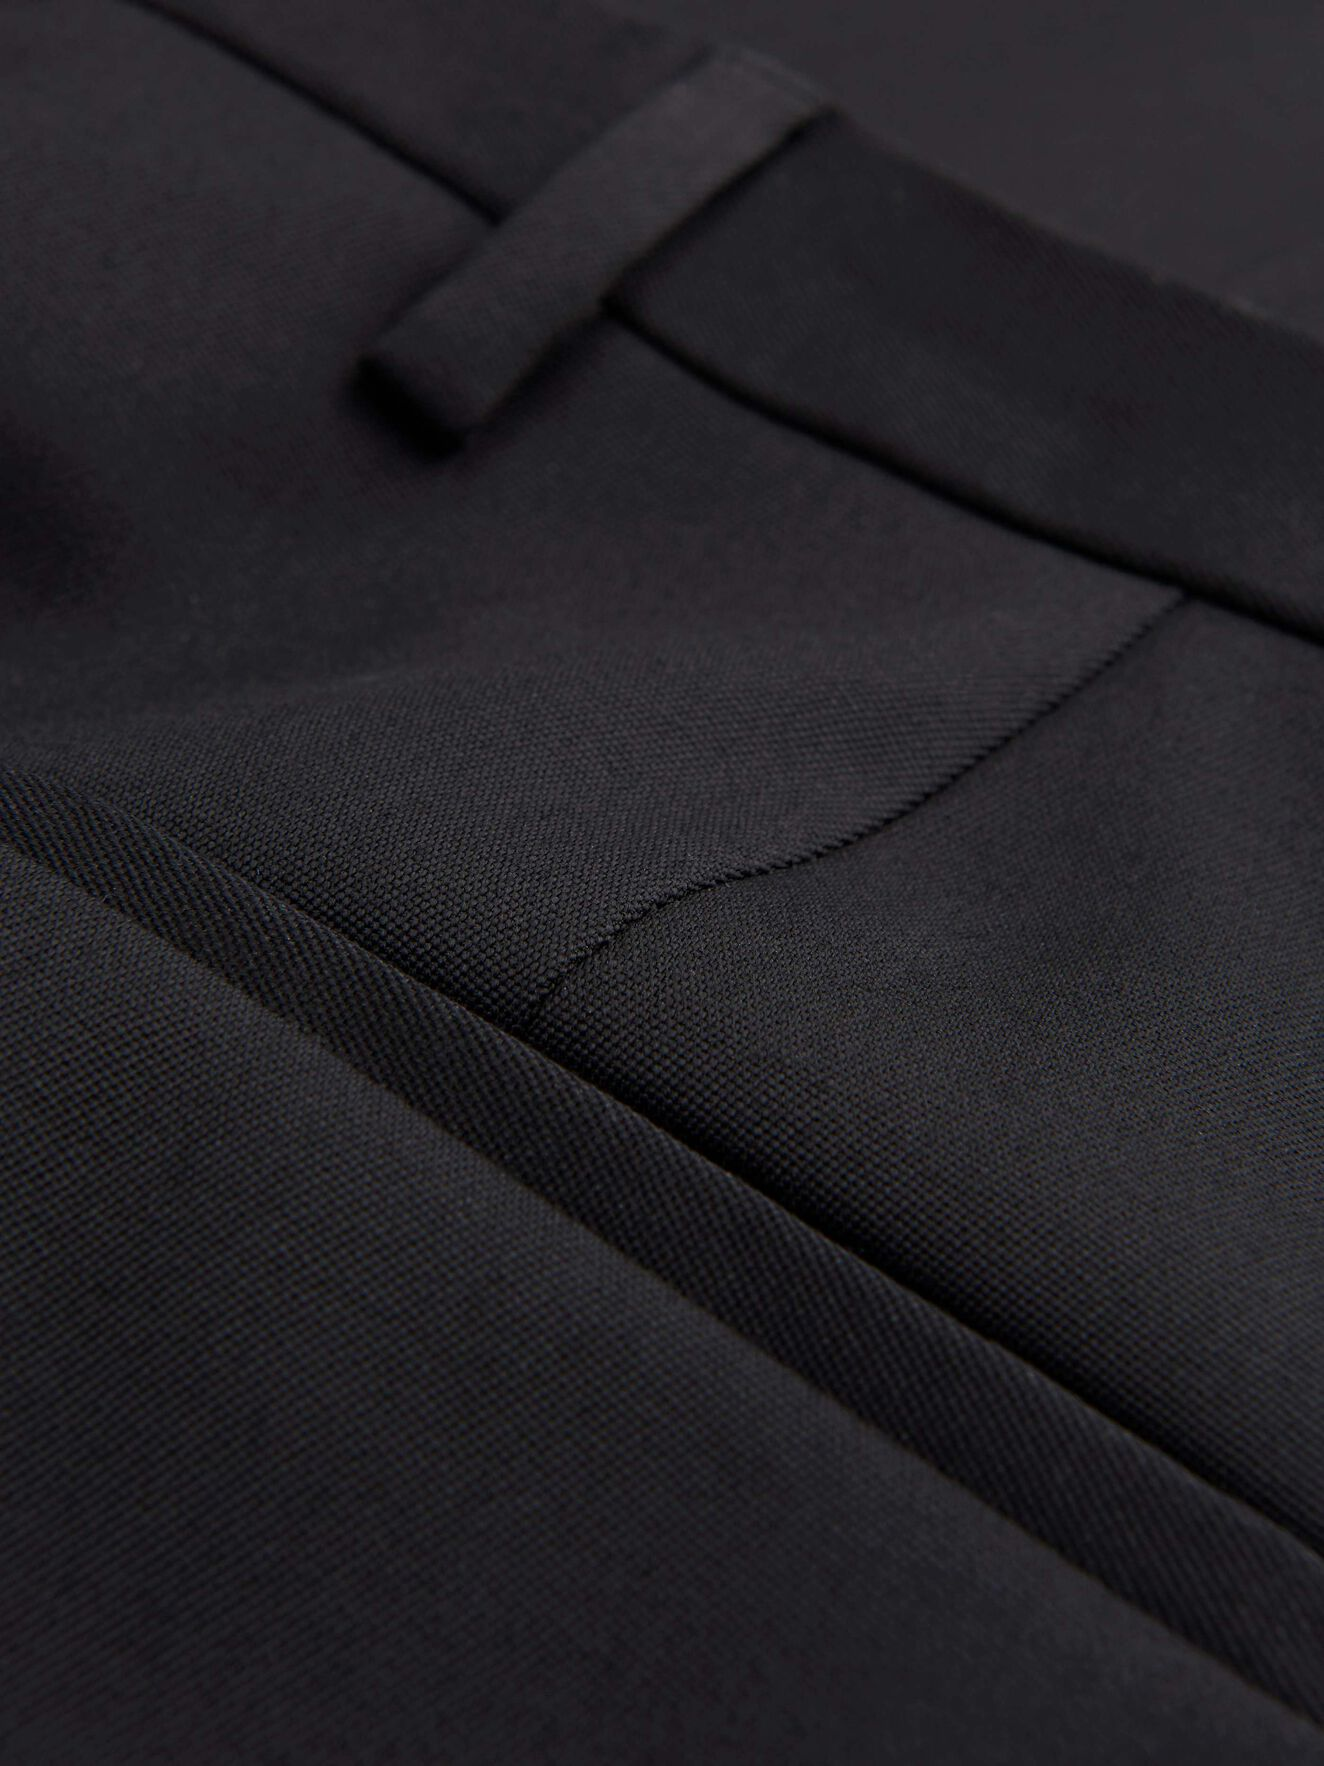 Thulin Trousers in Black from Tiger of Sweden